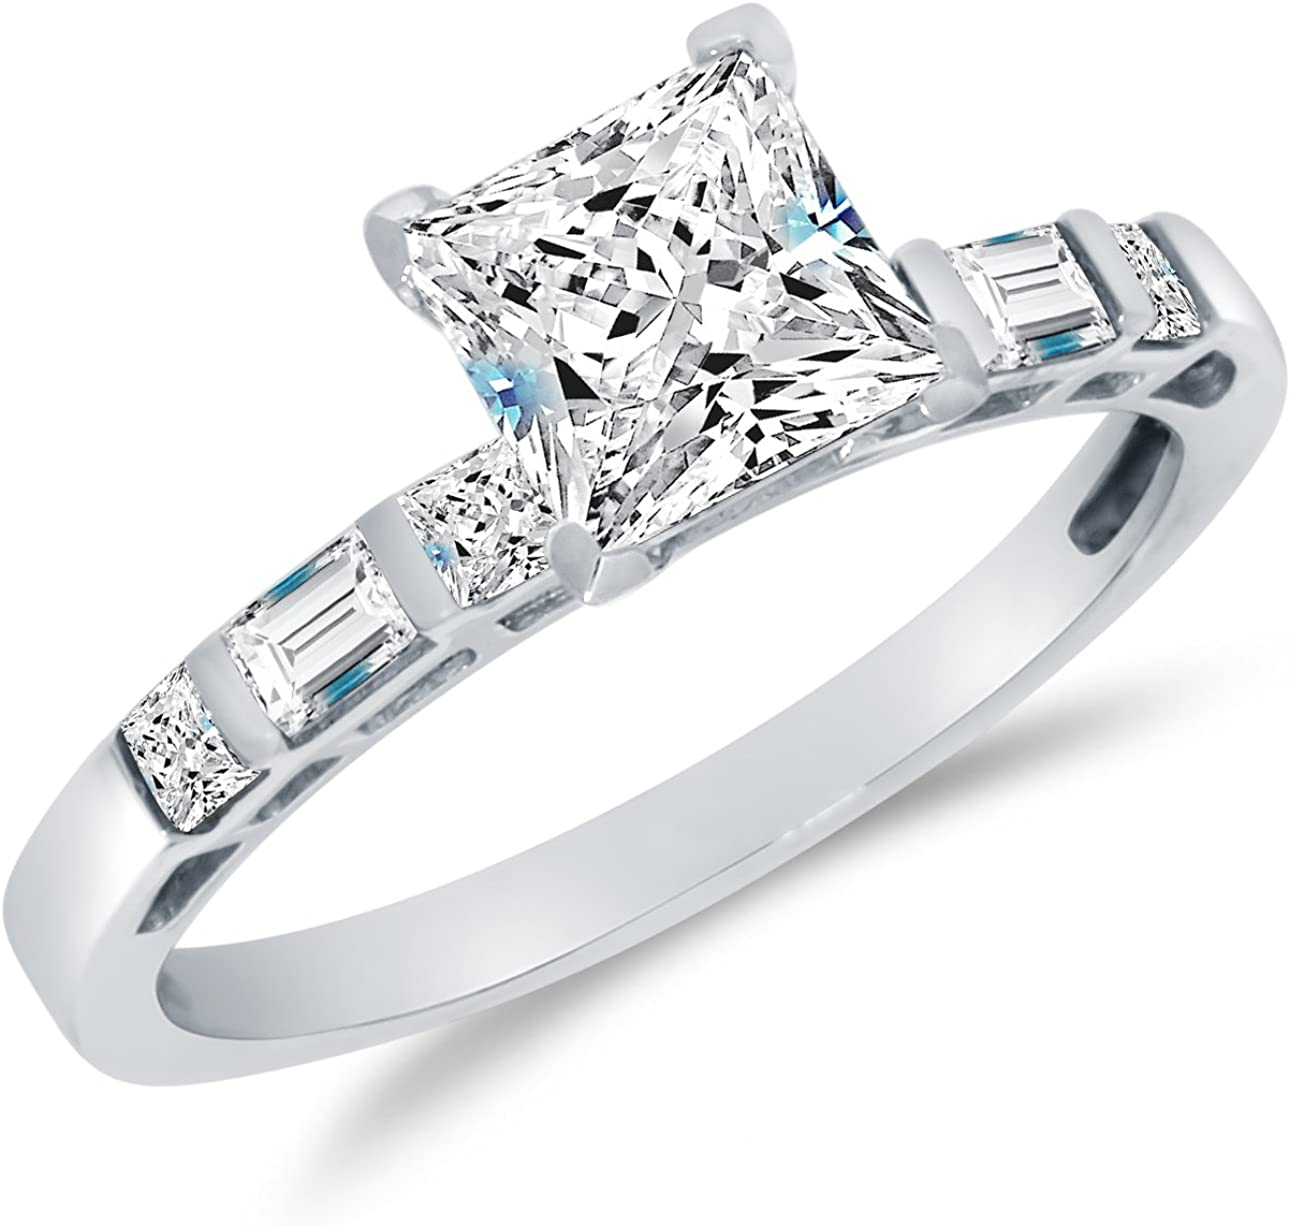 It is a photo of Solid 44k White Gold CZ Cubic Zirconia Bridal Engagement Ring w/Matching Wedding Band Two Ring Set - Princess Cut Solitaire with Baguette Side Stones